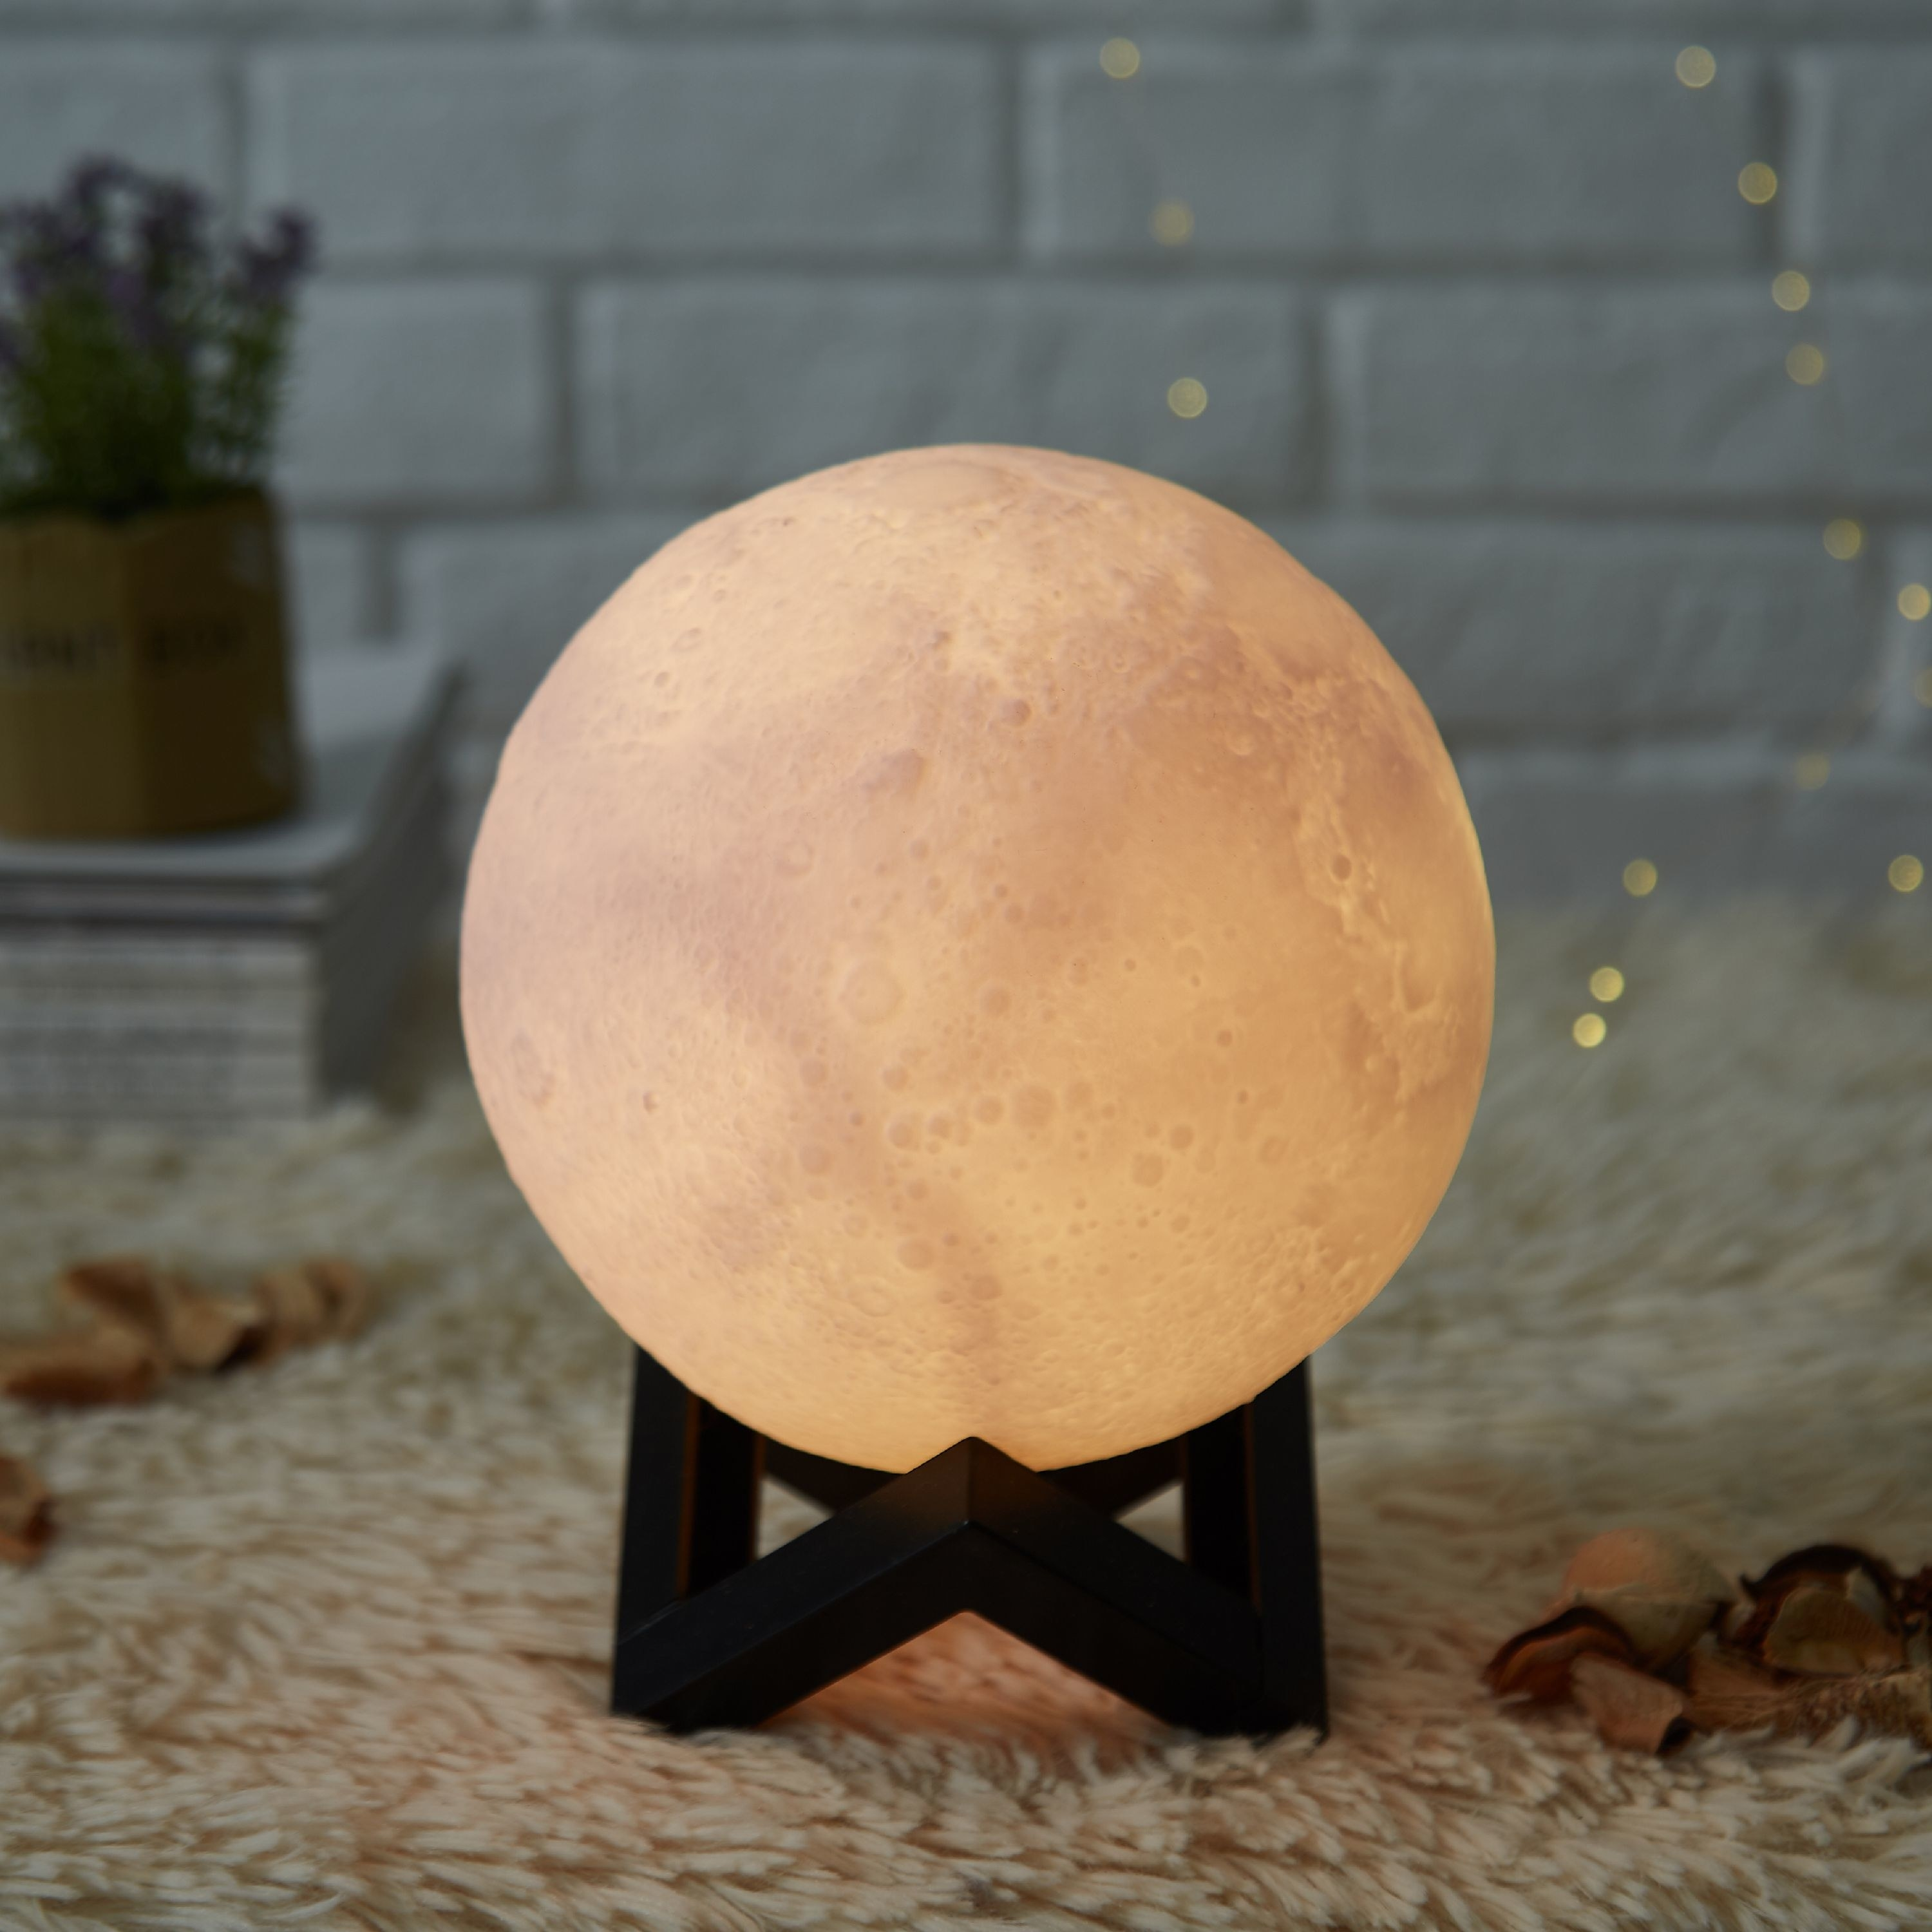 The moon lamp on a stand